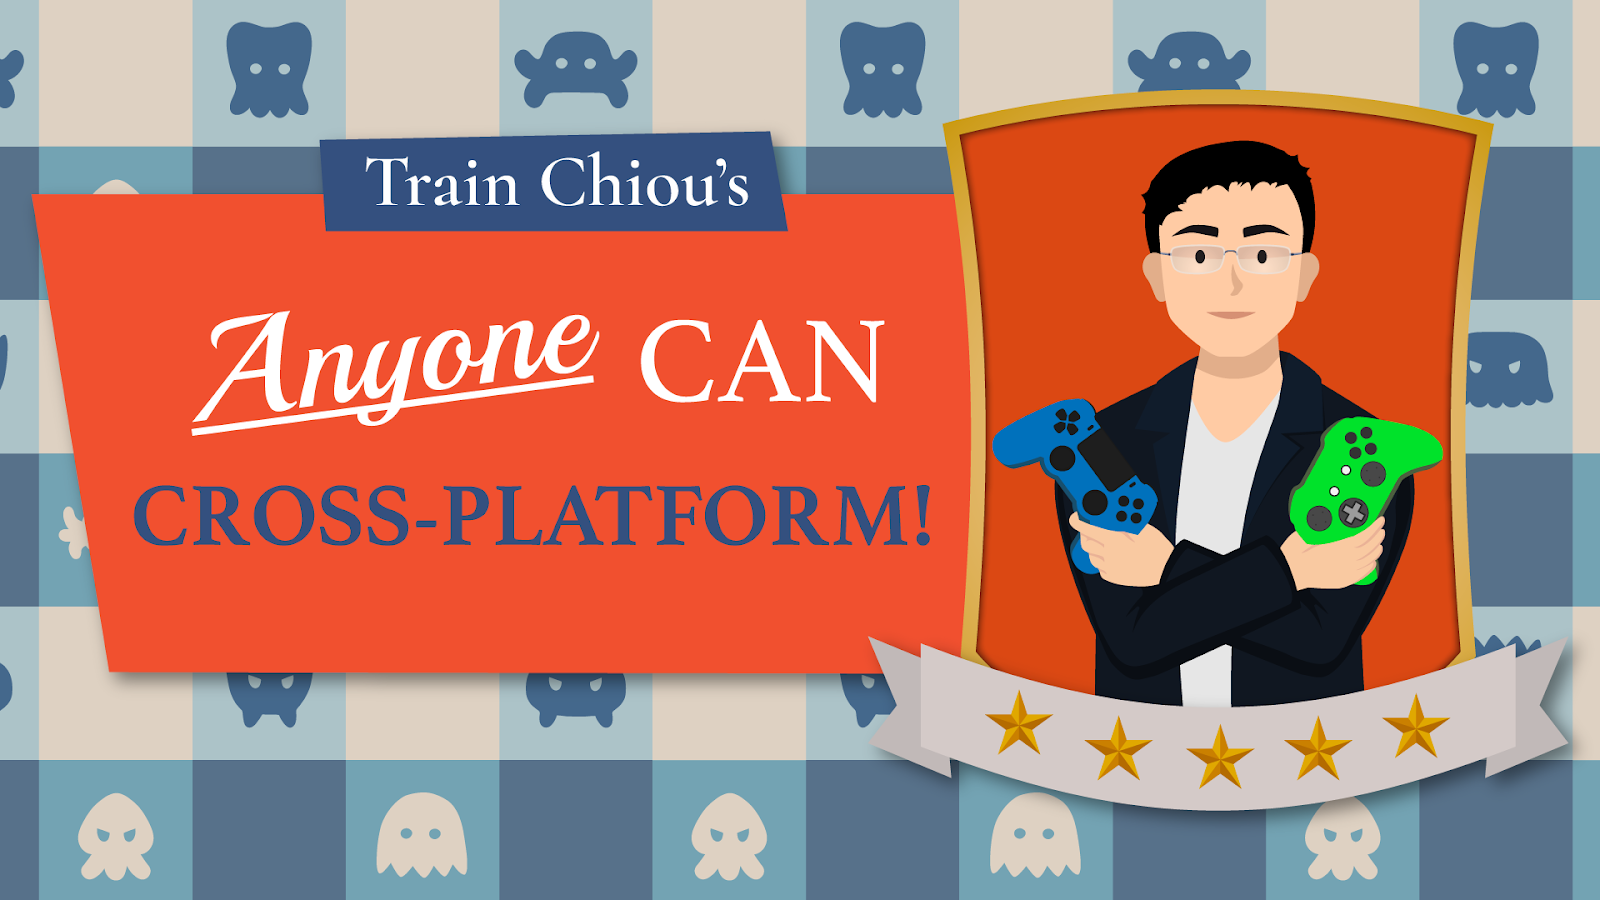 anyone can cross platform (how to make cross platform game) by train chiou